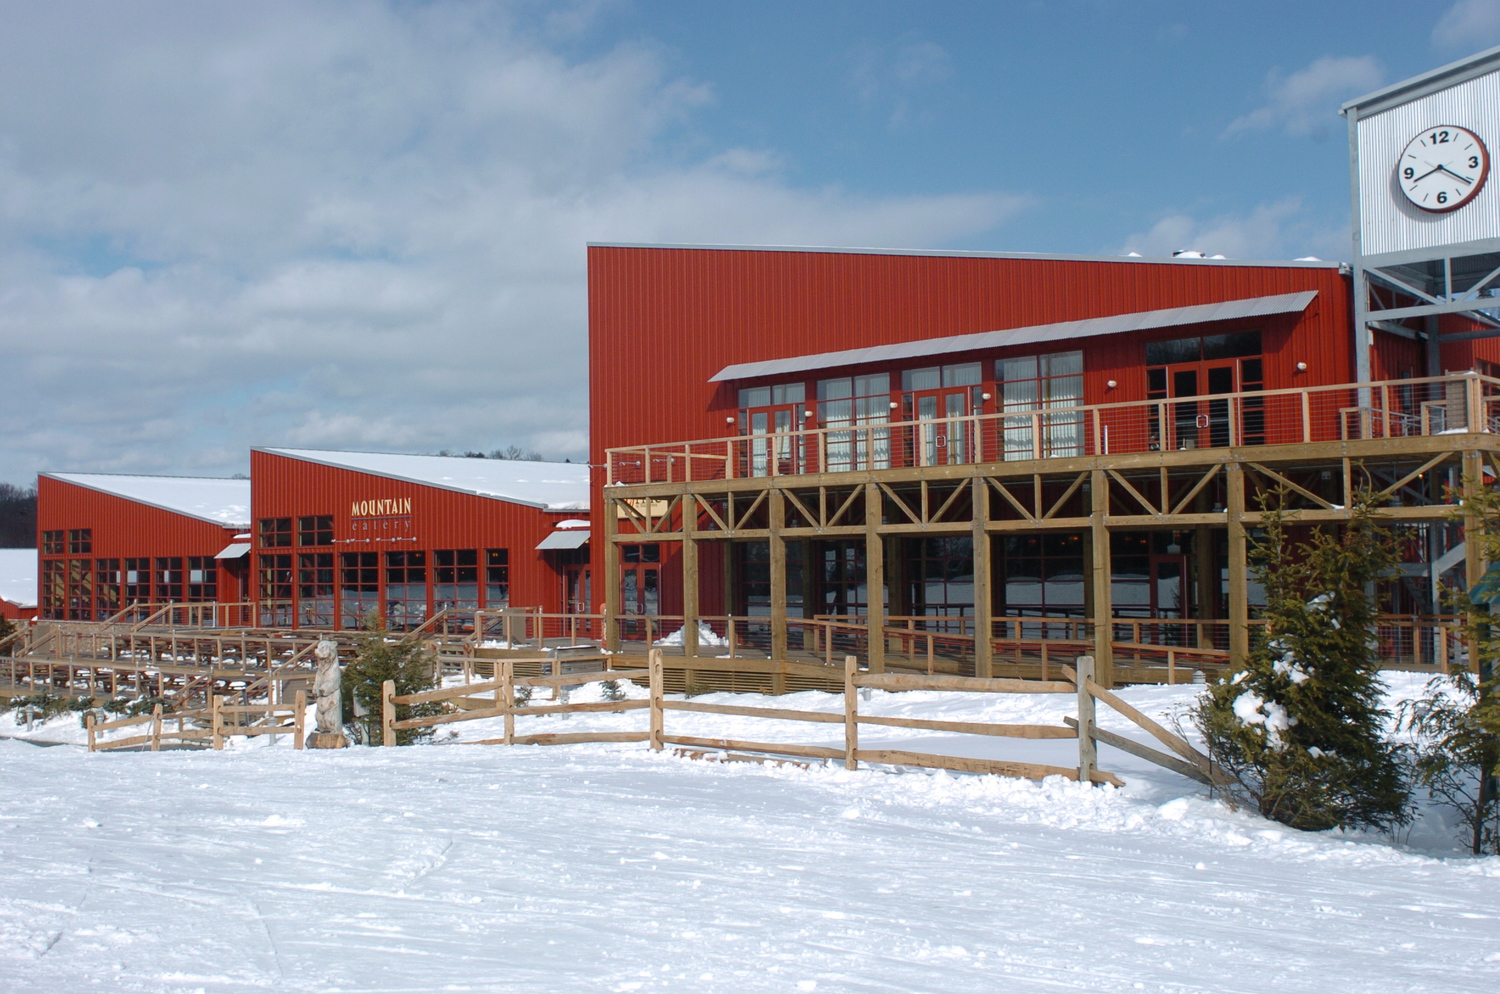 bear creek mountain resort & conference center, lehigh valley, pa